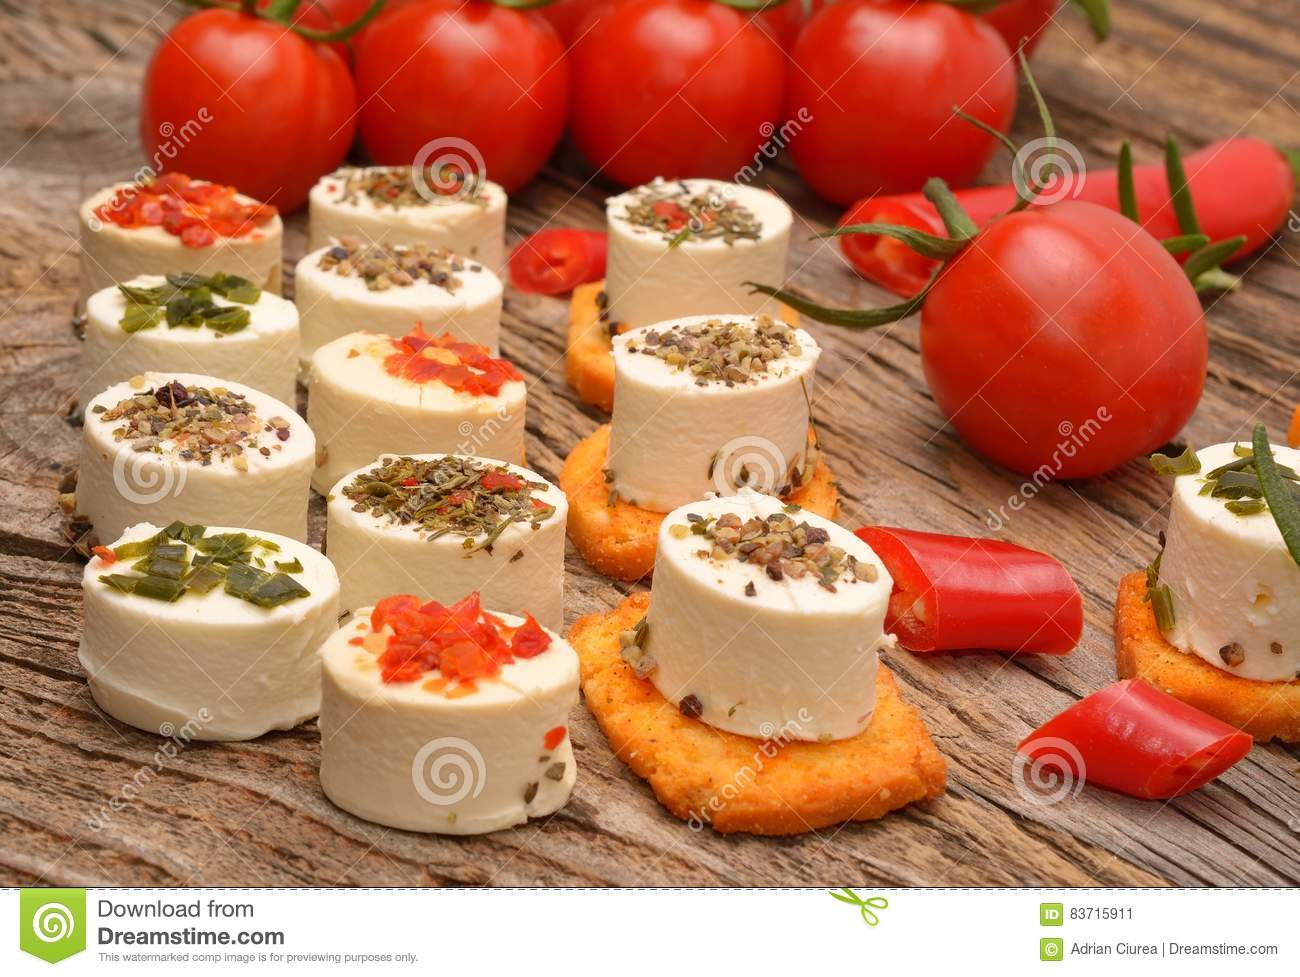 Appetizers Cheese And Bruschetta With Herbs, Tomato And Chilli Peppers Stock Photo